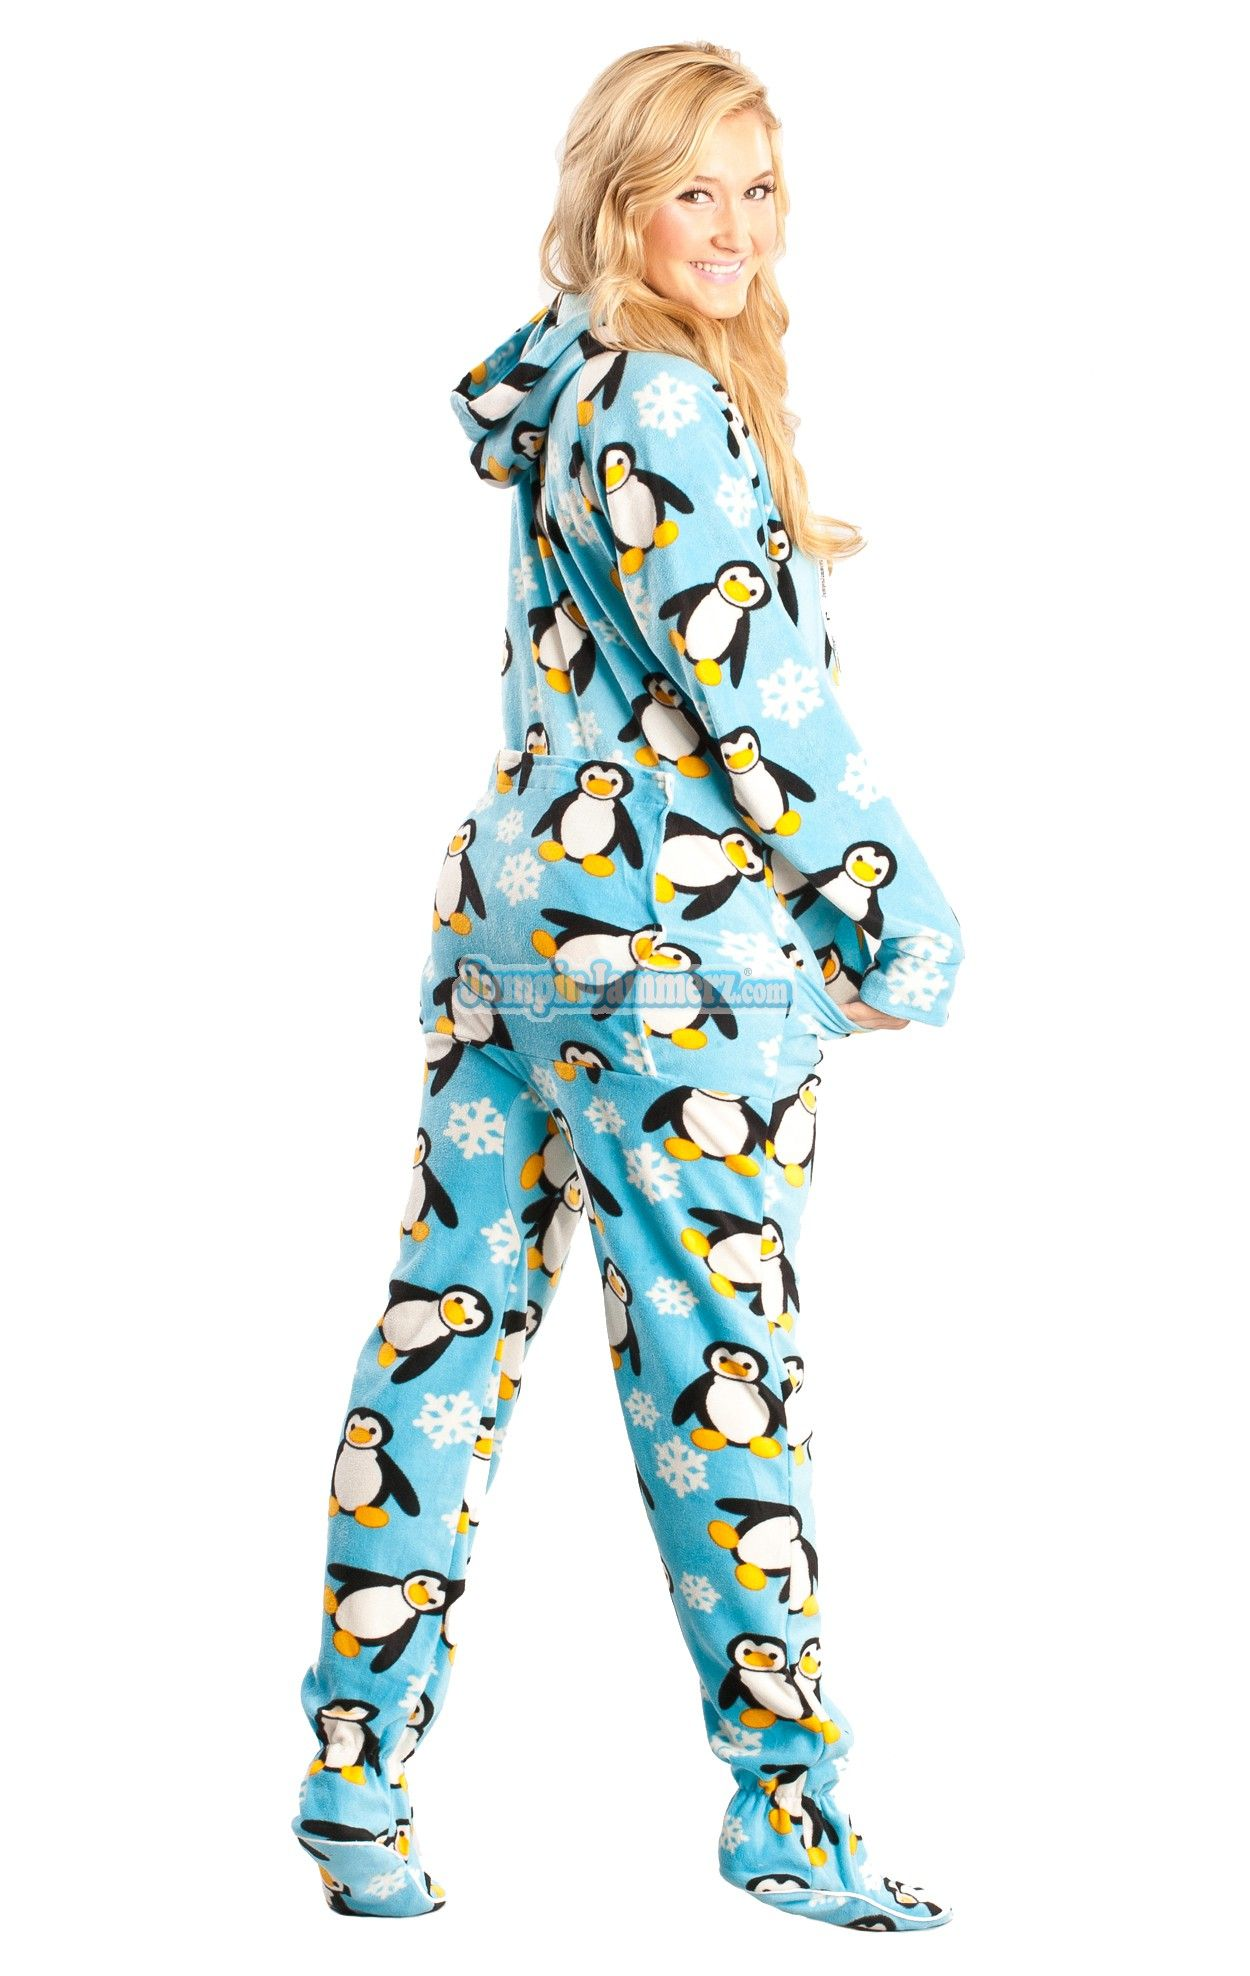 Penguins - Drop Seat Hoodie - Pajamas Footie PJs Onesies One Piece Adult  Pajamas - JumpinJammerz.com 04baa1e58